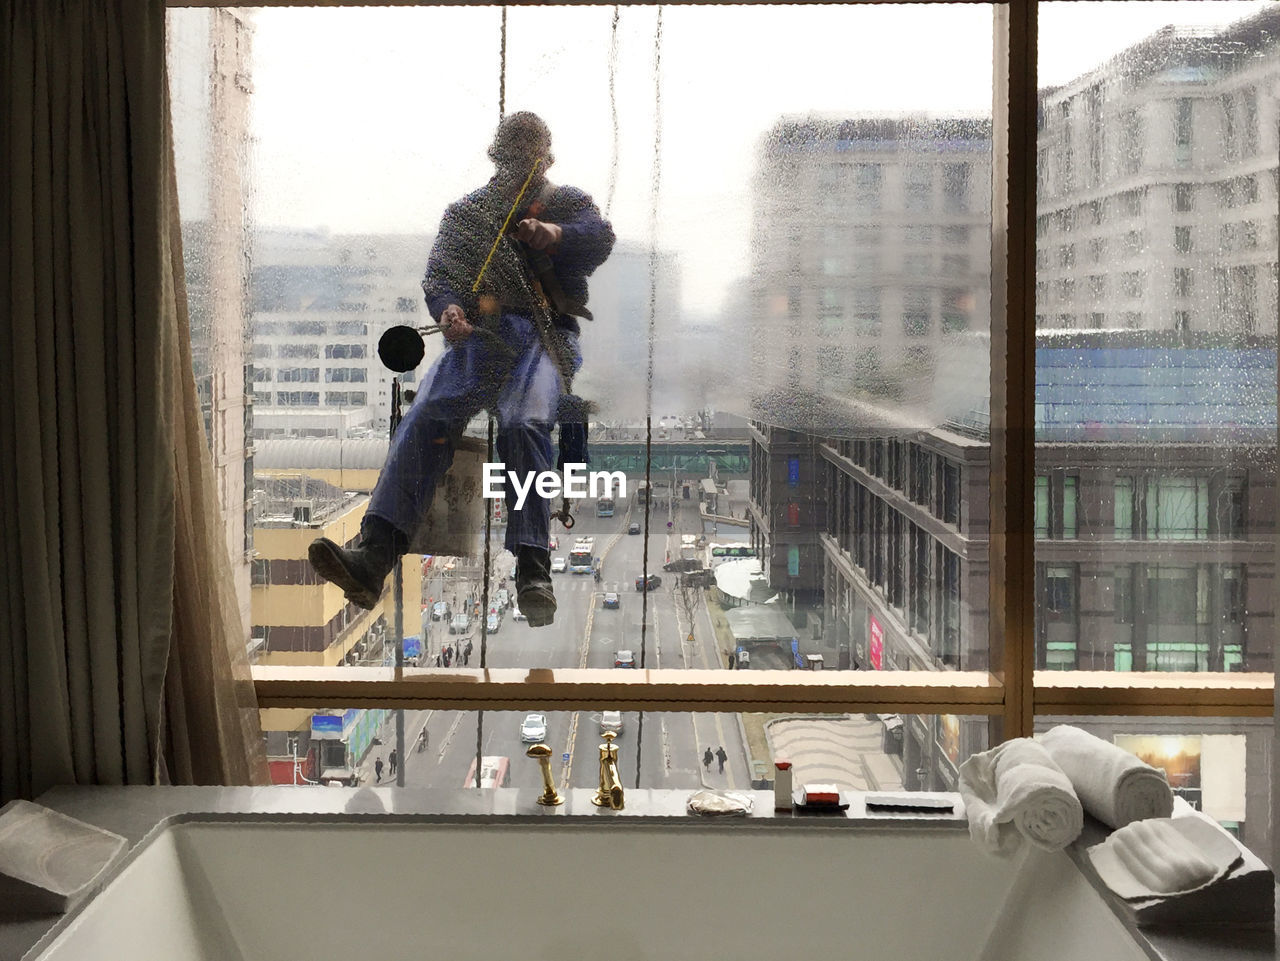 Man hanging while cleaning window